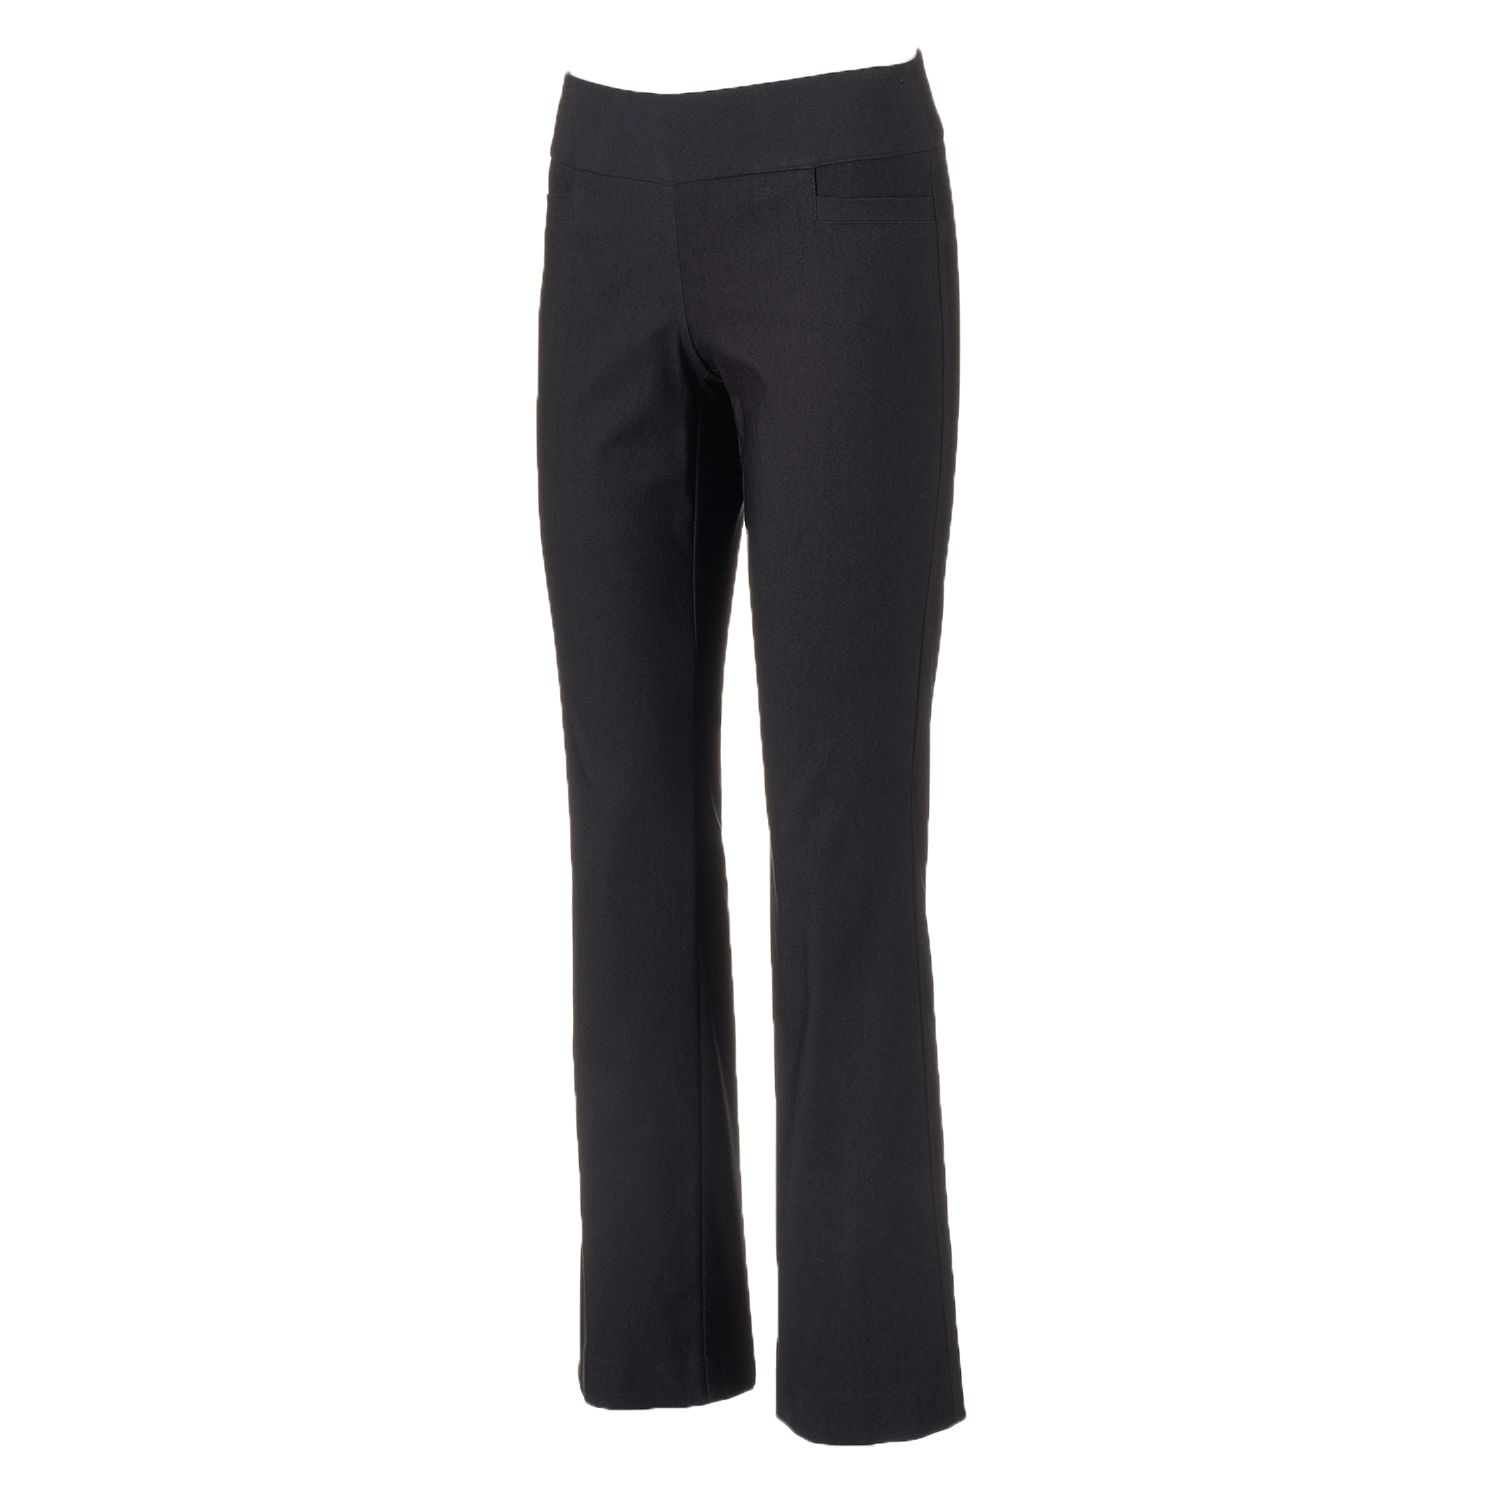 Kohls bootcut leggings